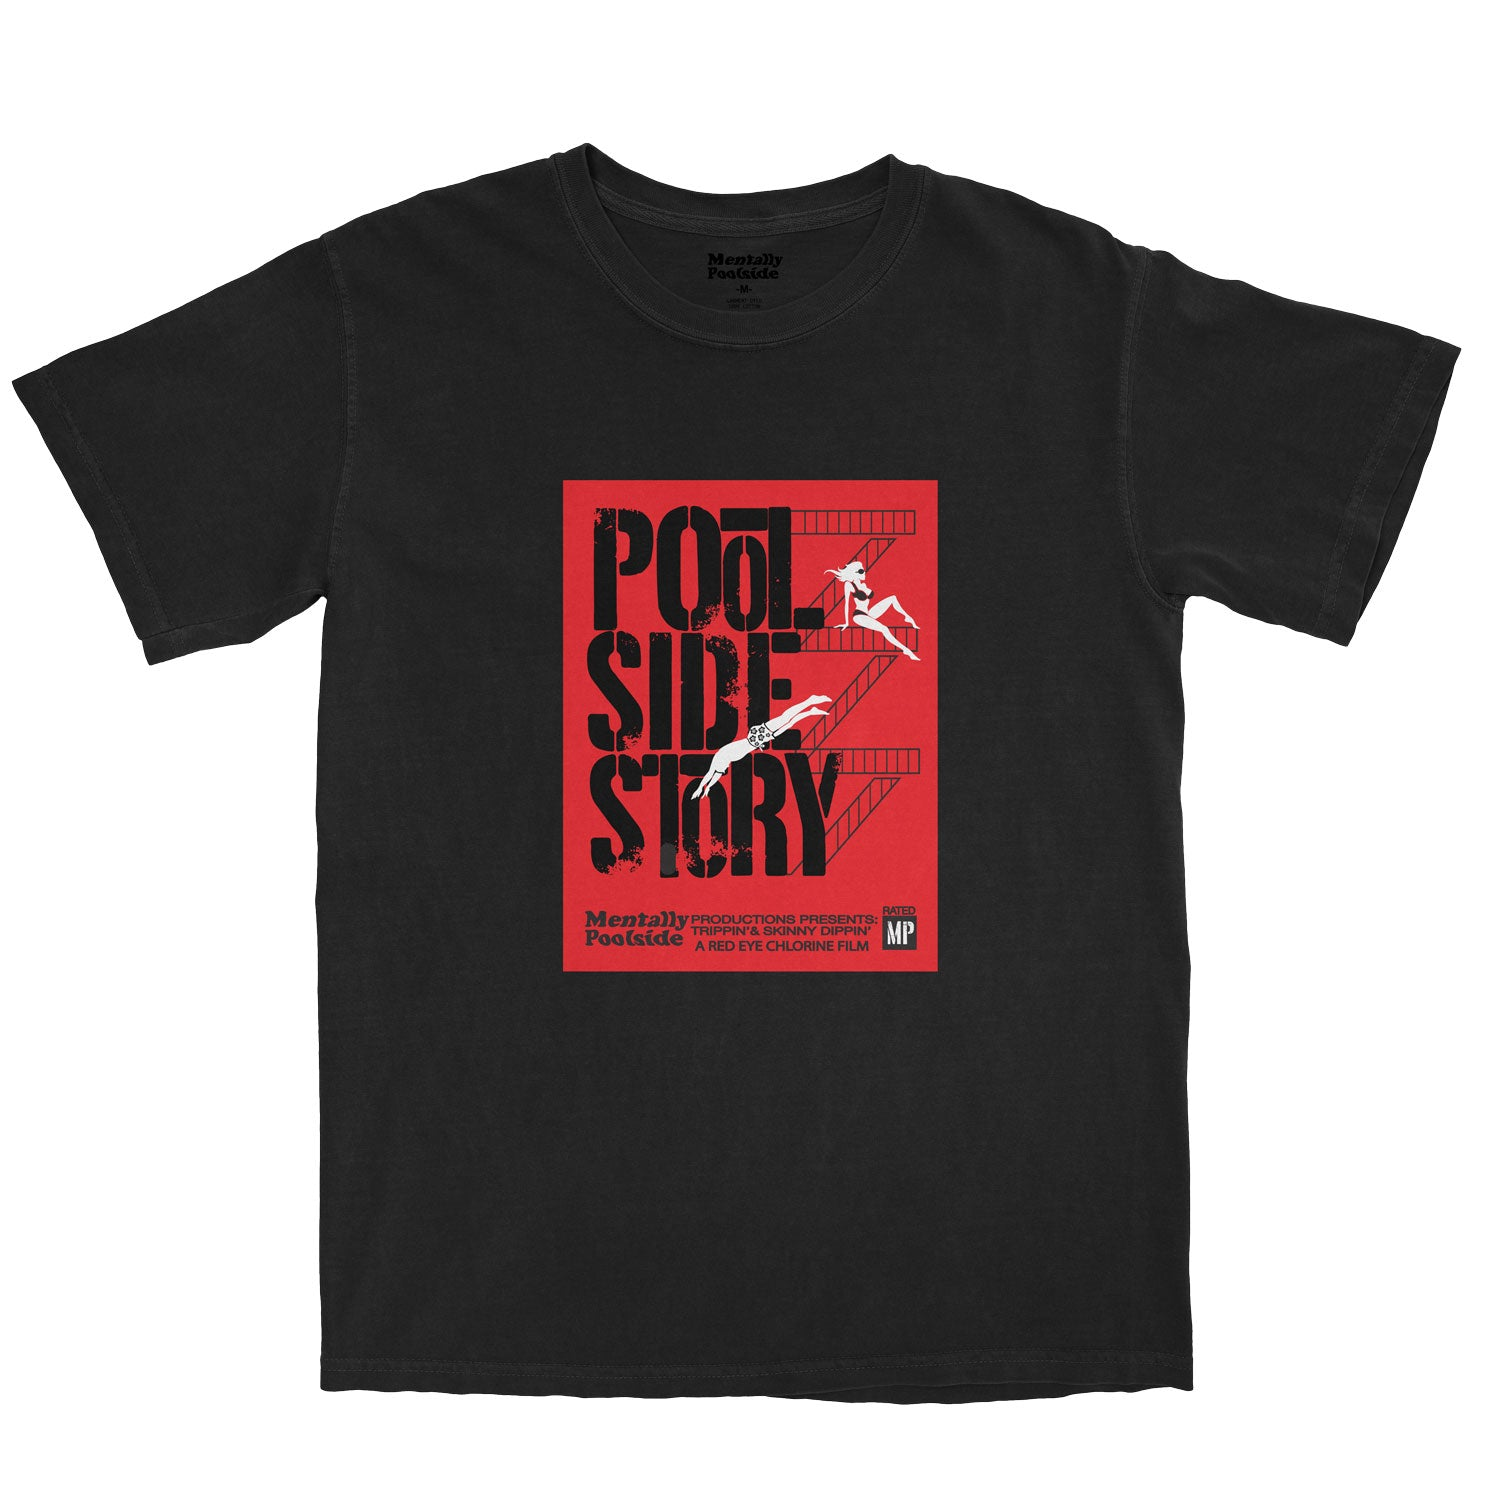 Pool Side Story-Tee shirt-Comfort colors-Black-S-Mentally Poolside